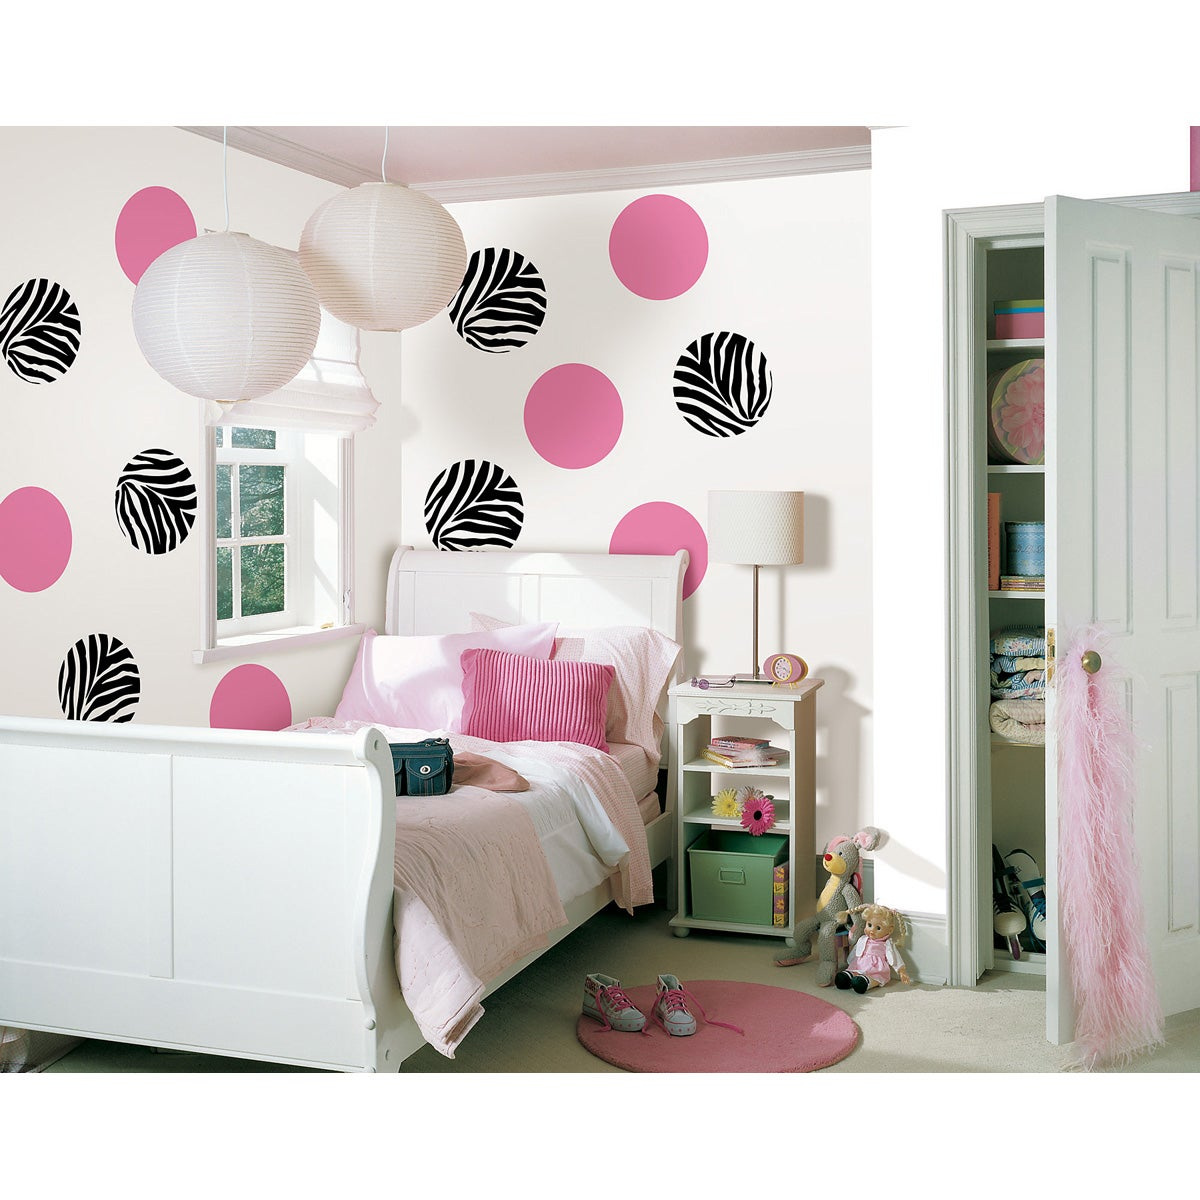 Wall Pops 'Go Wild Zebra and Flirt Pink Dots' Wall Decal Set